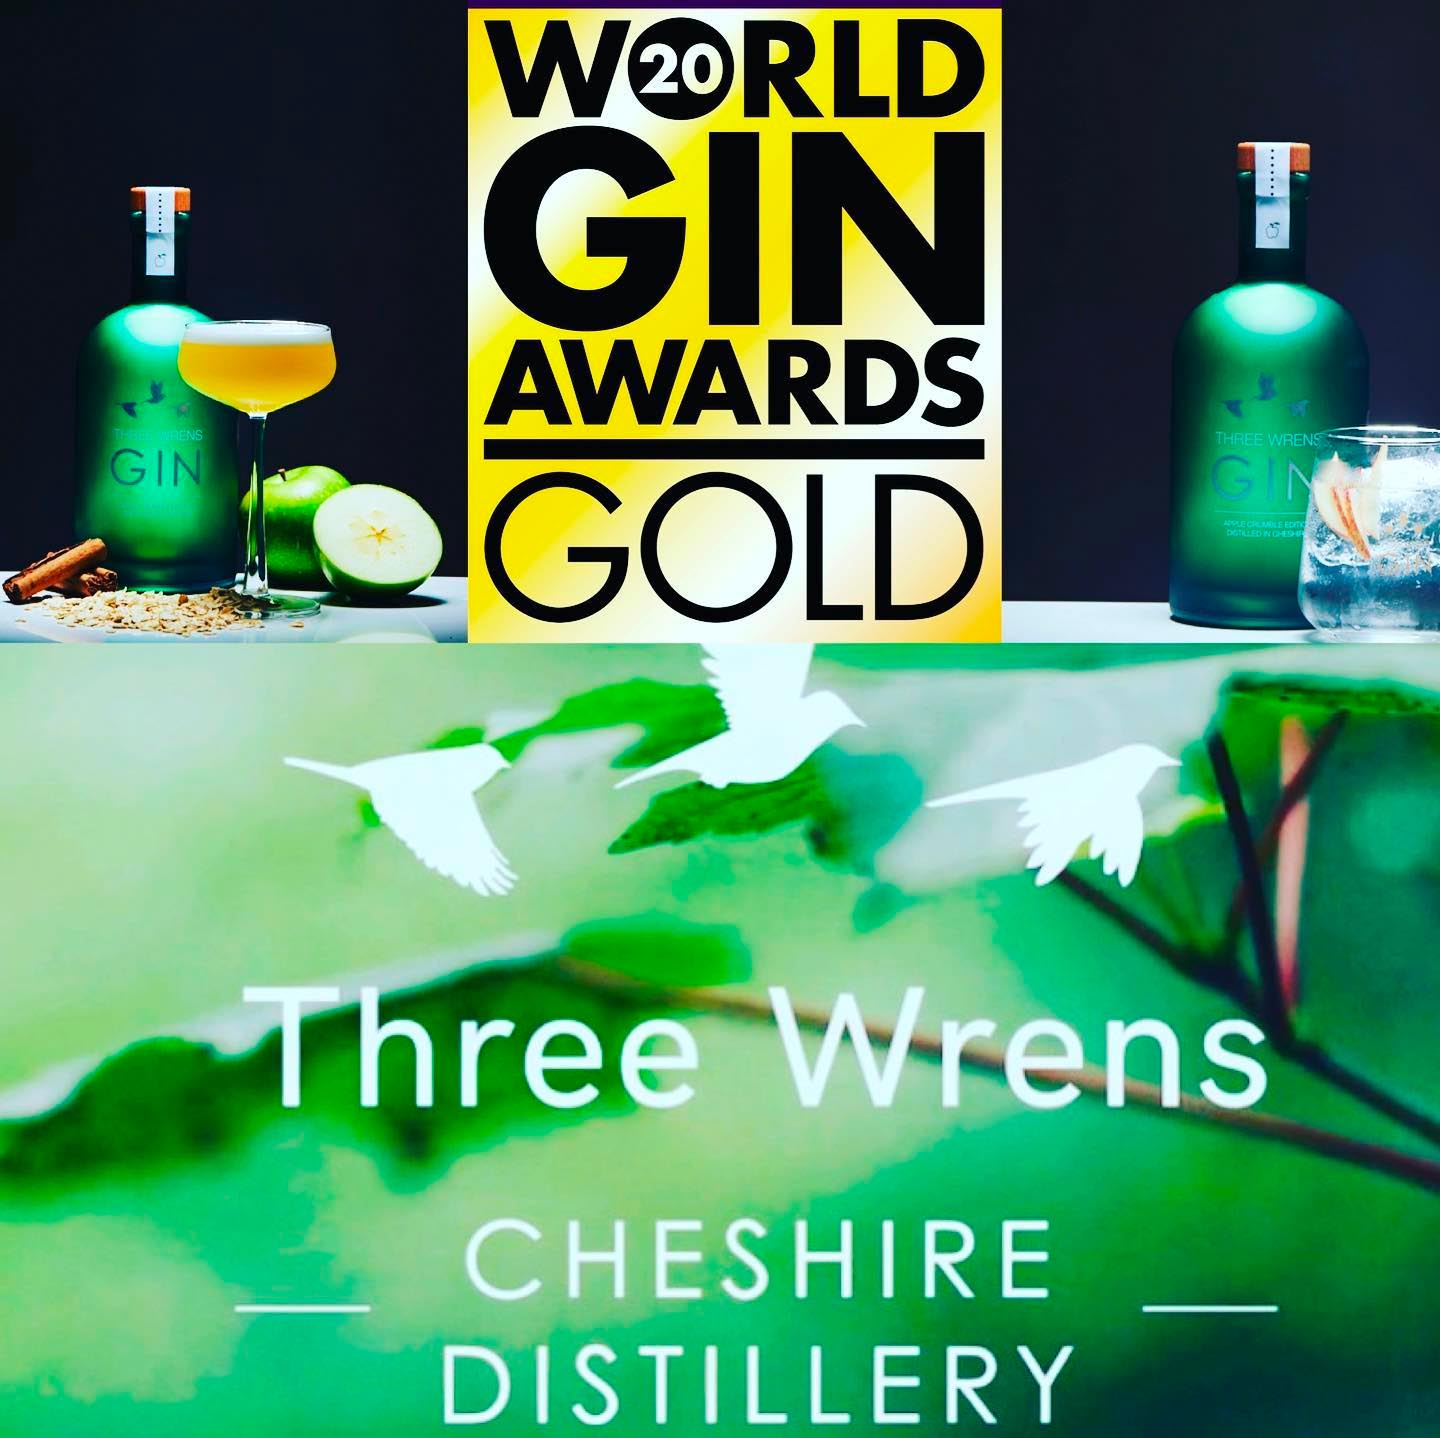 world gin awards 2020 gold winner